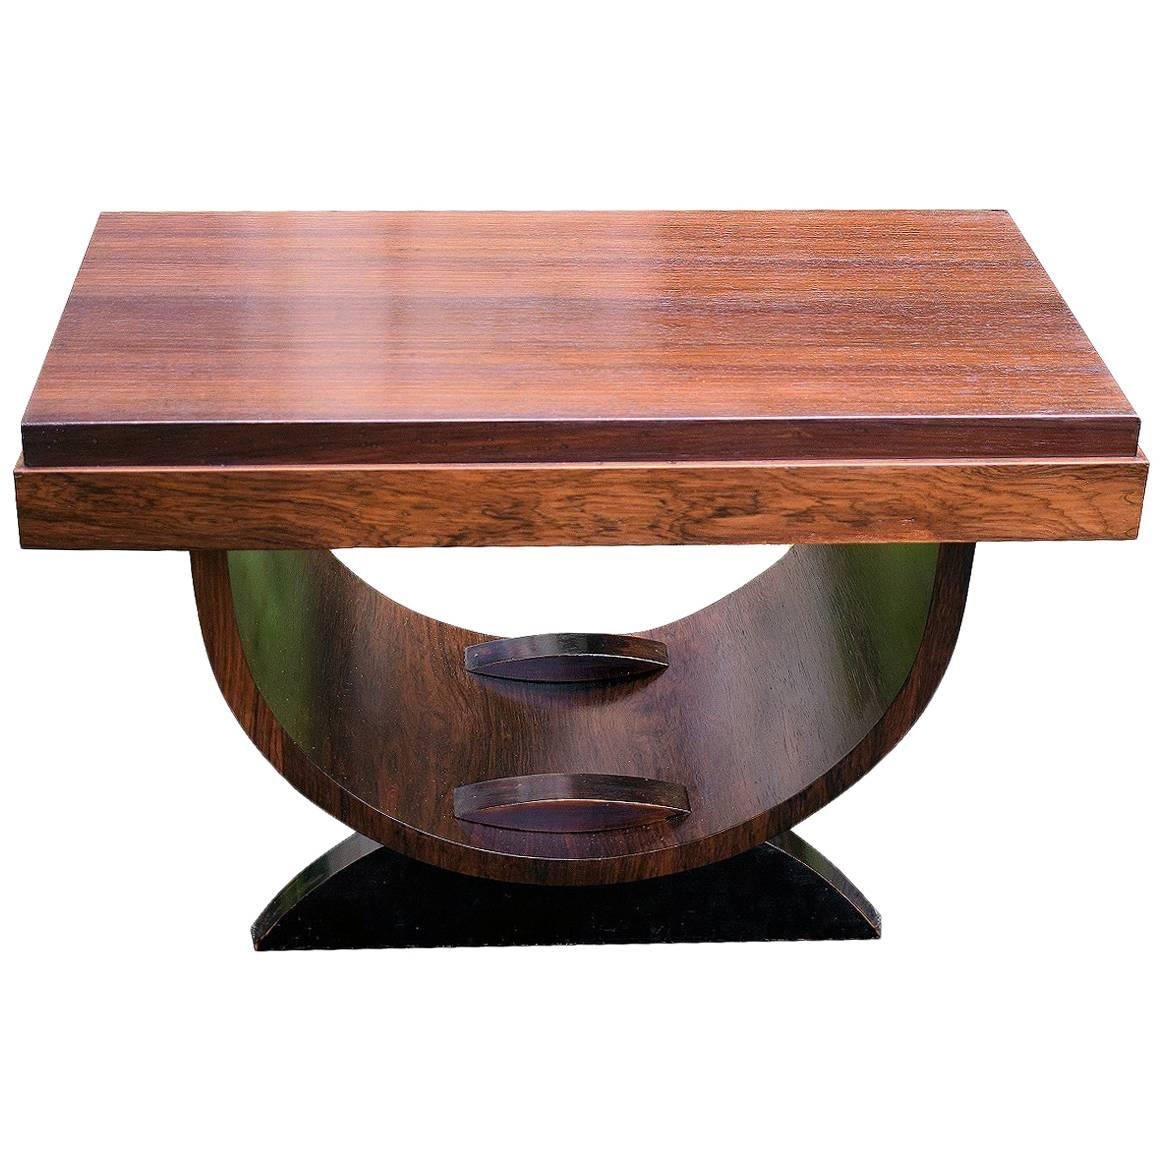 High Style French Art Deco U-Base Occasional Table